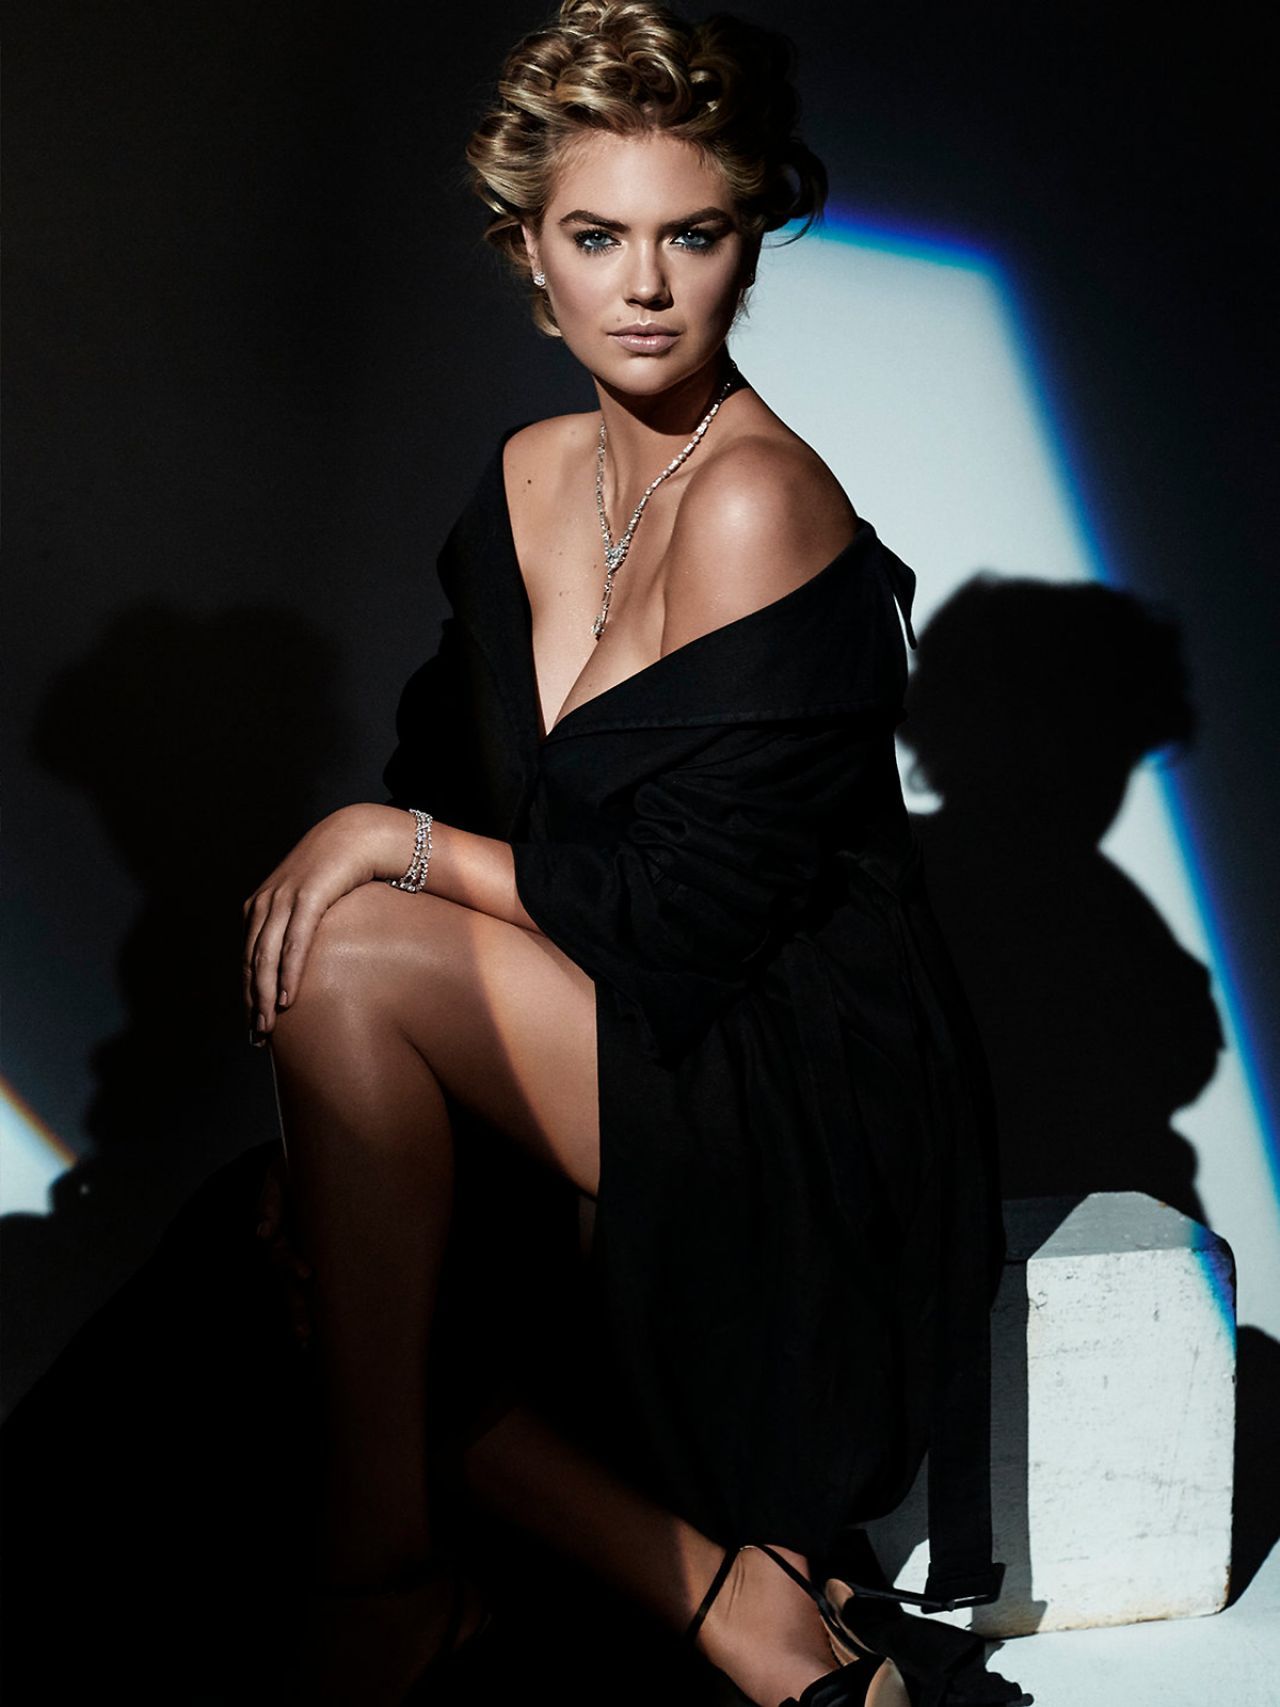 Kate Upton Photoshoot For Harpers Bazaar Magazine